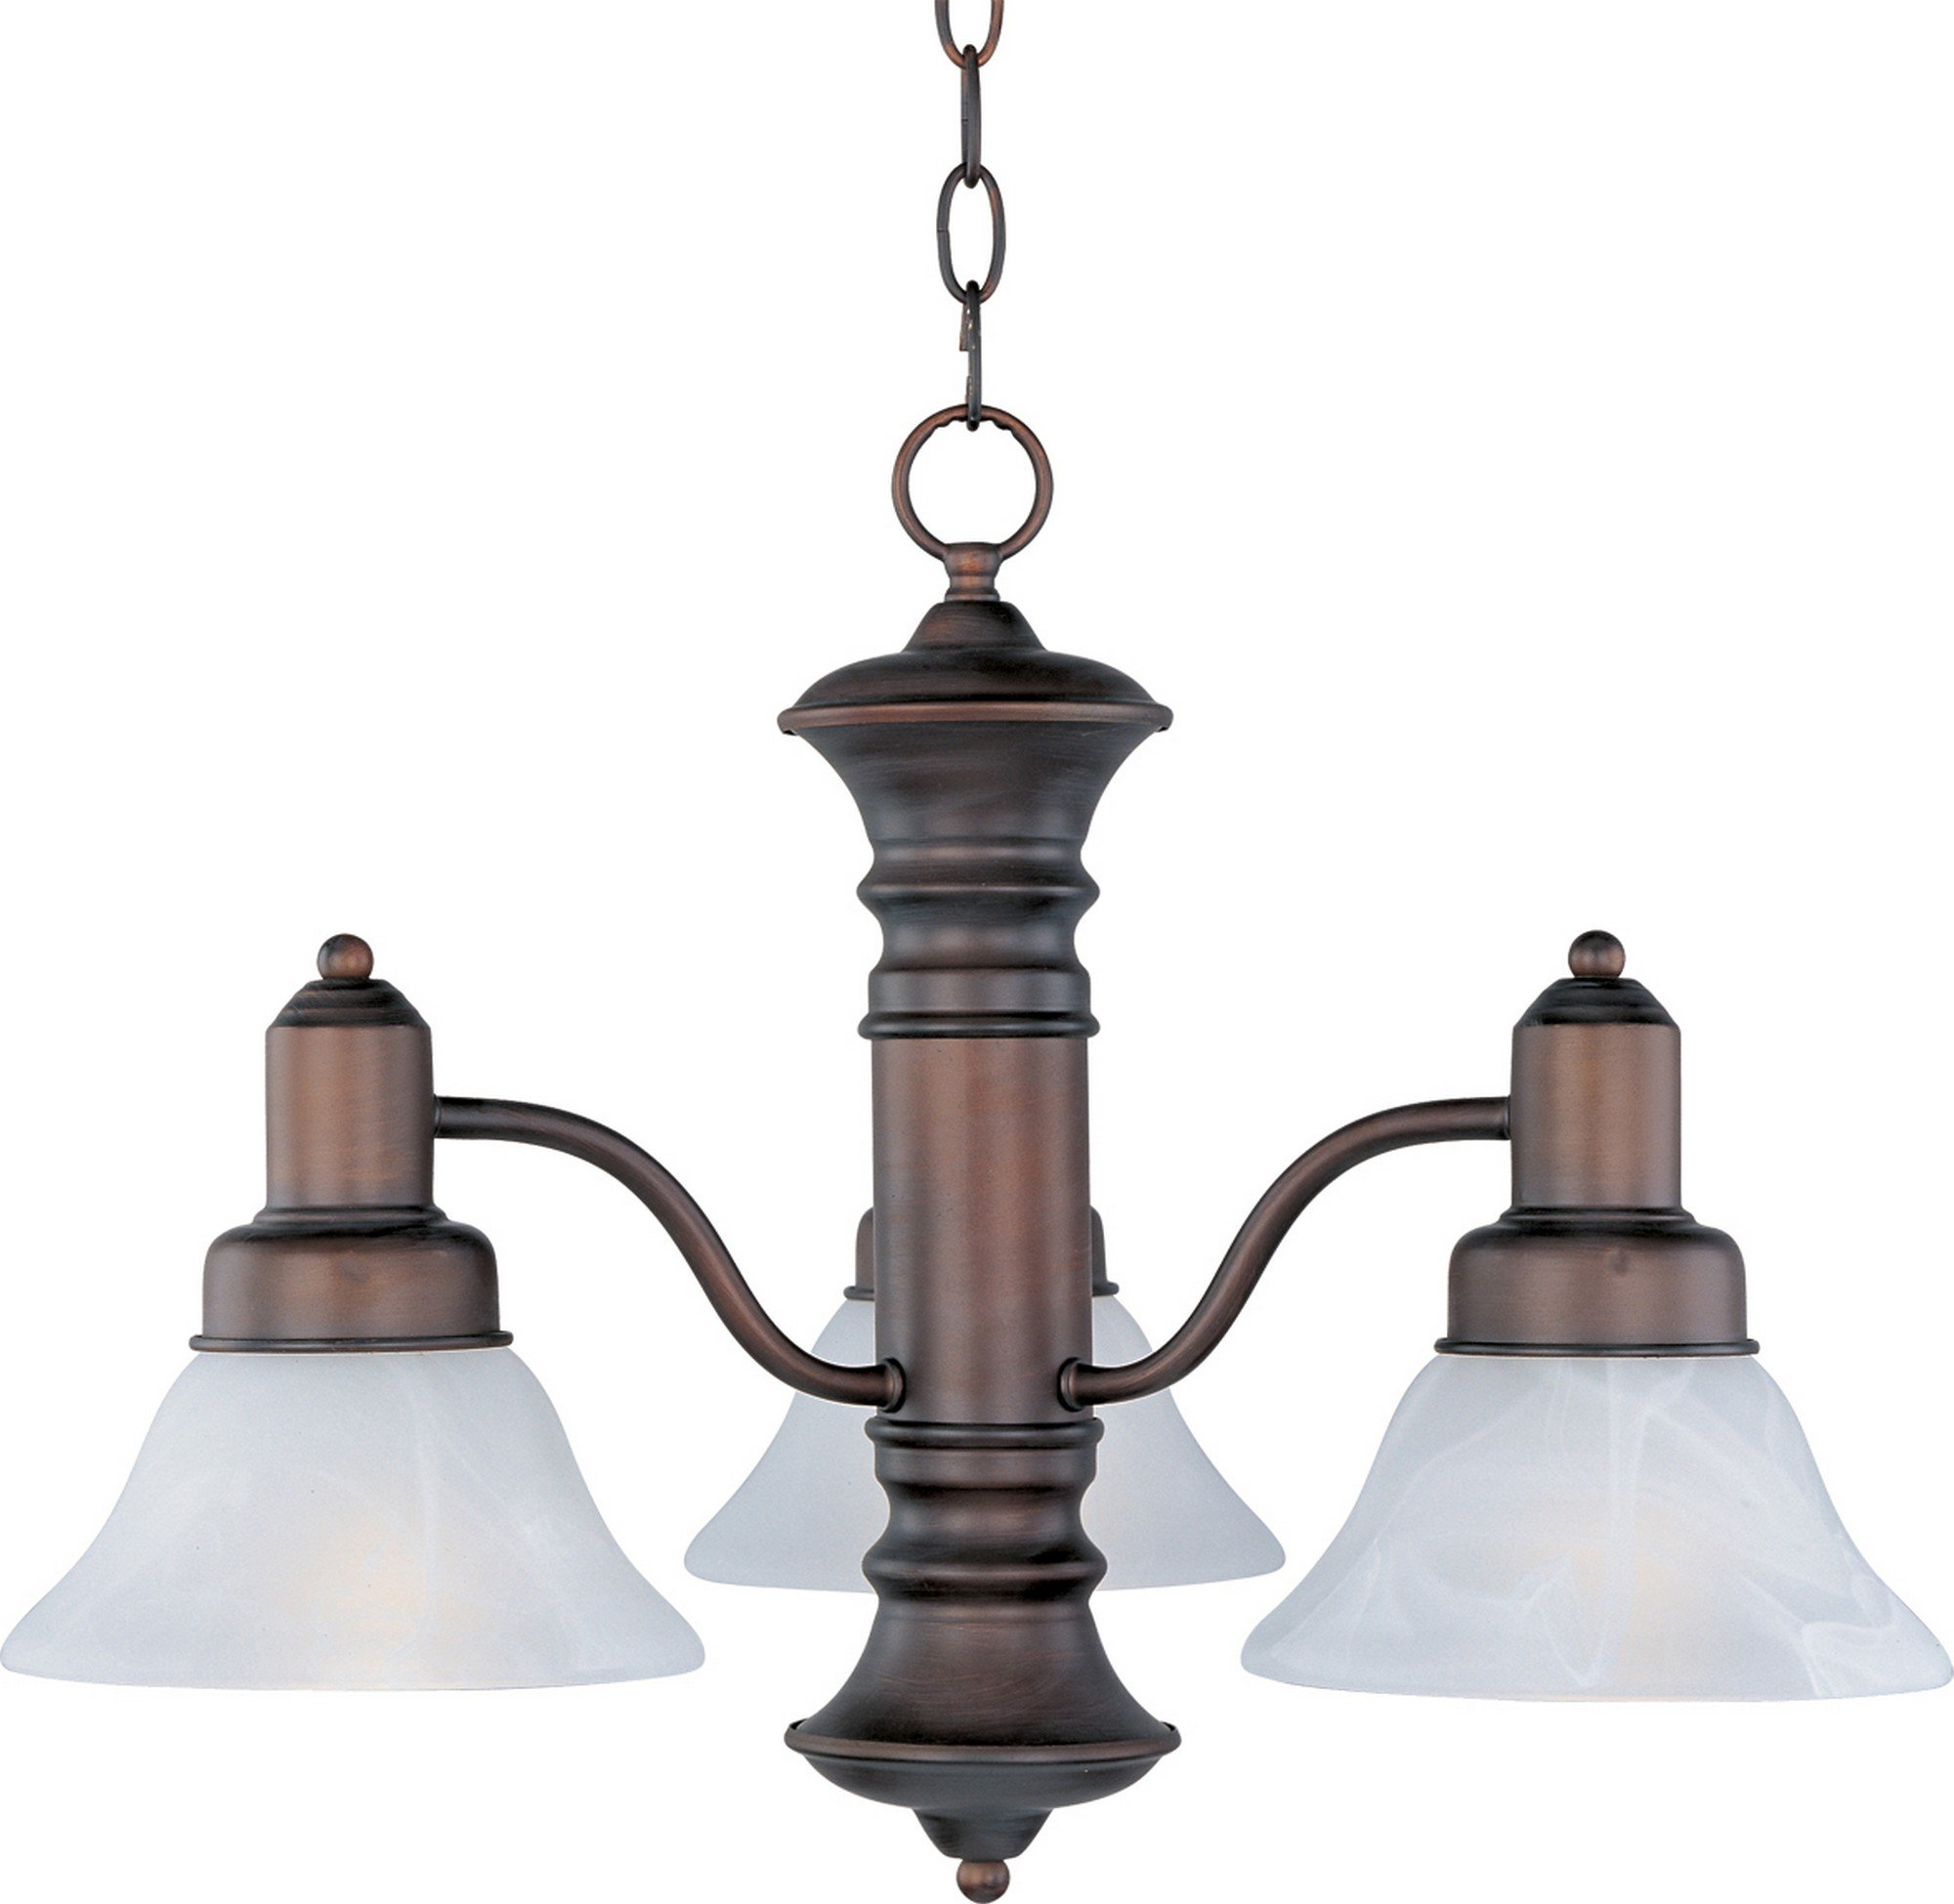 Maxim 20326MROI Newburg 3-Light Chandelier, Oil Rubbed Bronze Finish, Marble Glass, MB Incandescent Incandescent Bulb , 60W Max., Dry Safety Rating, Standard Dimmable, Metal Shade Material, Rated Lumens